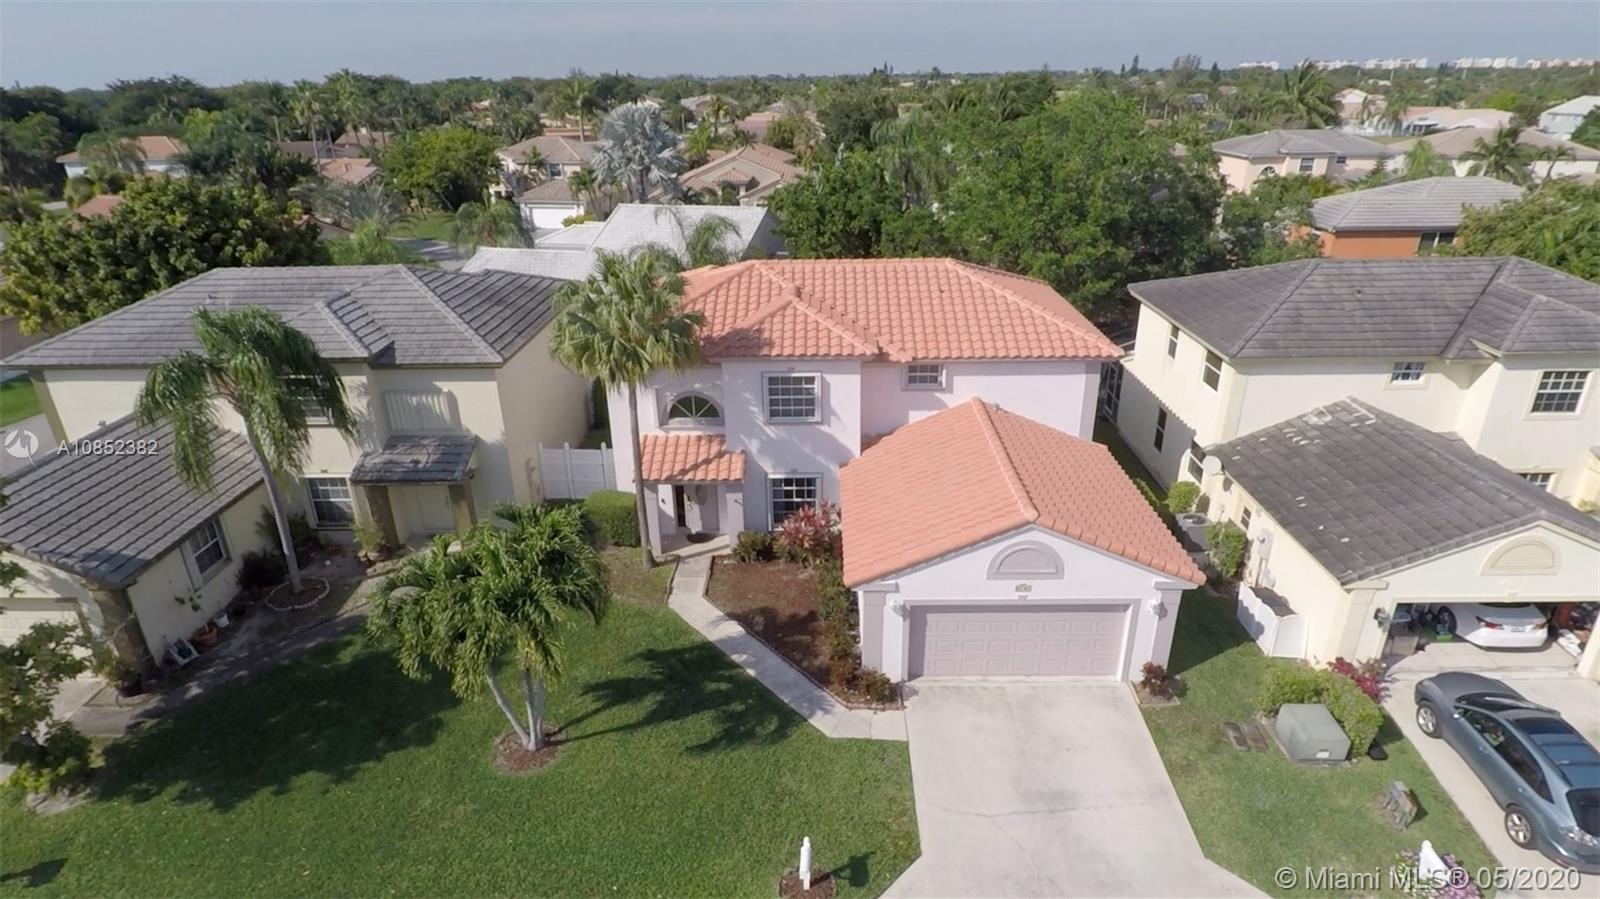 Large home in the Coquina Lakes subdivision of Deerfield Beach. Its location is convenient to shoppi